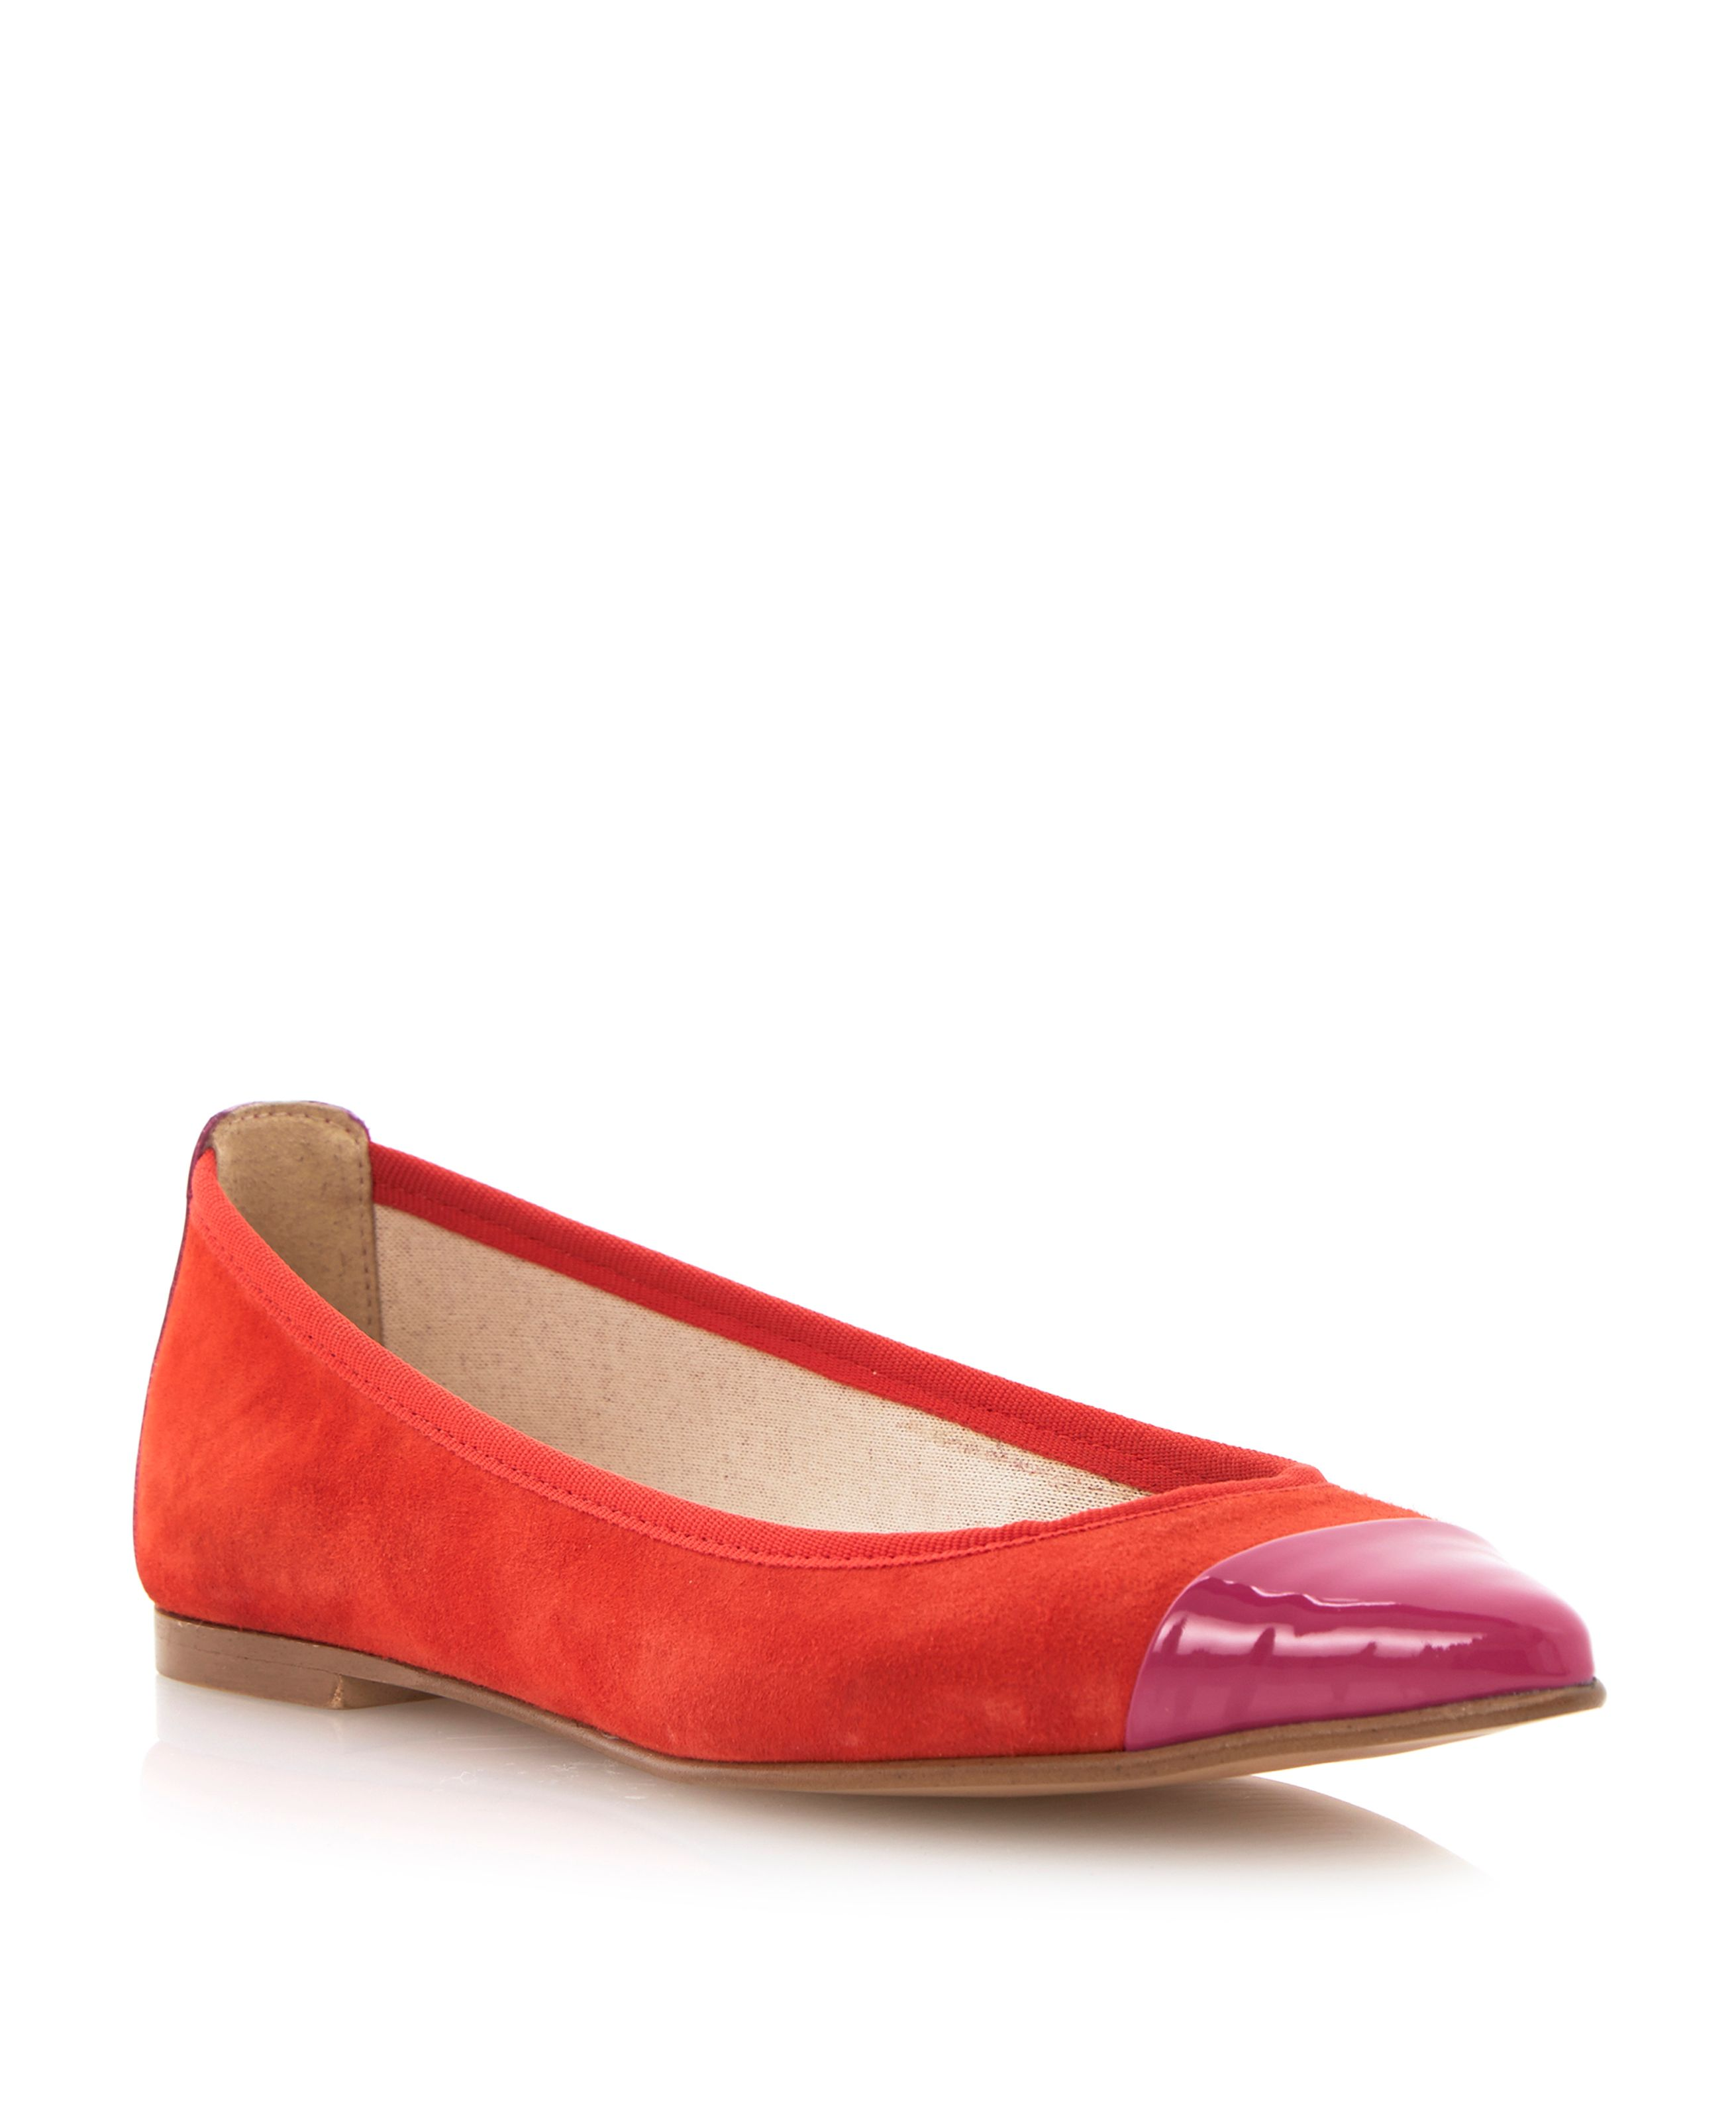 Monita toecap point ballerina pumps